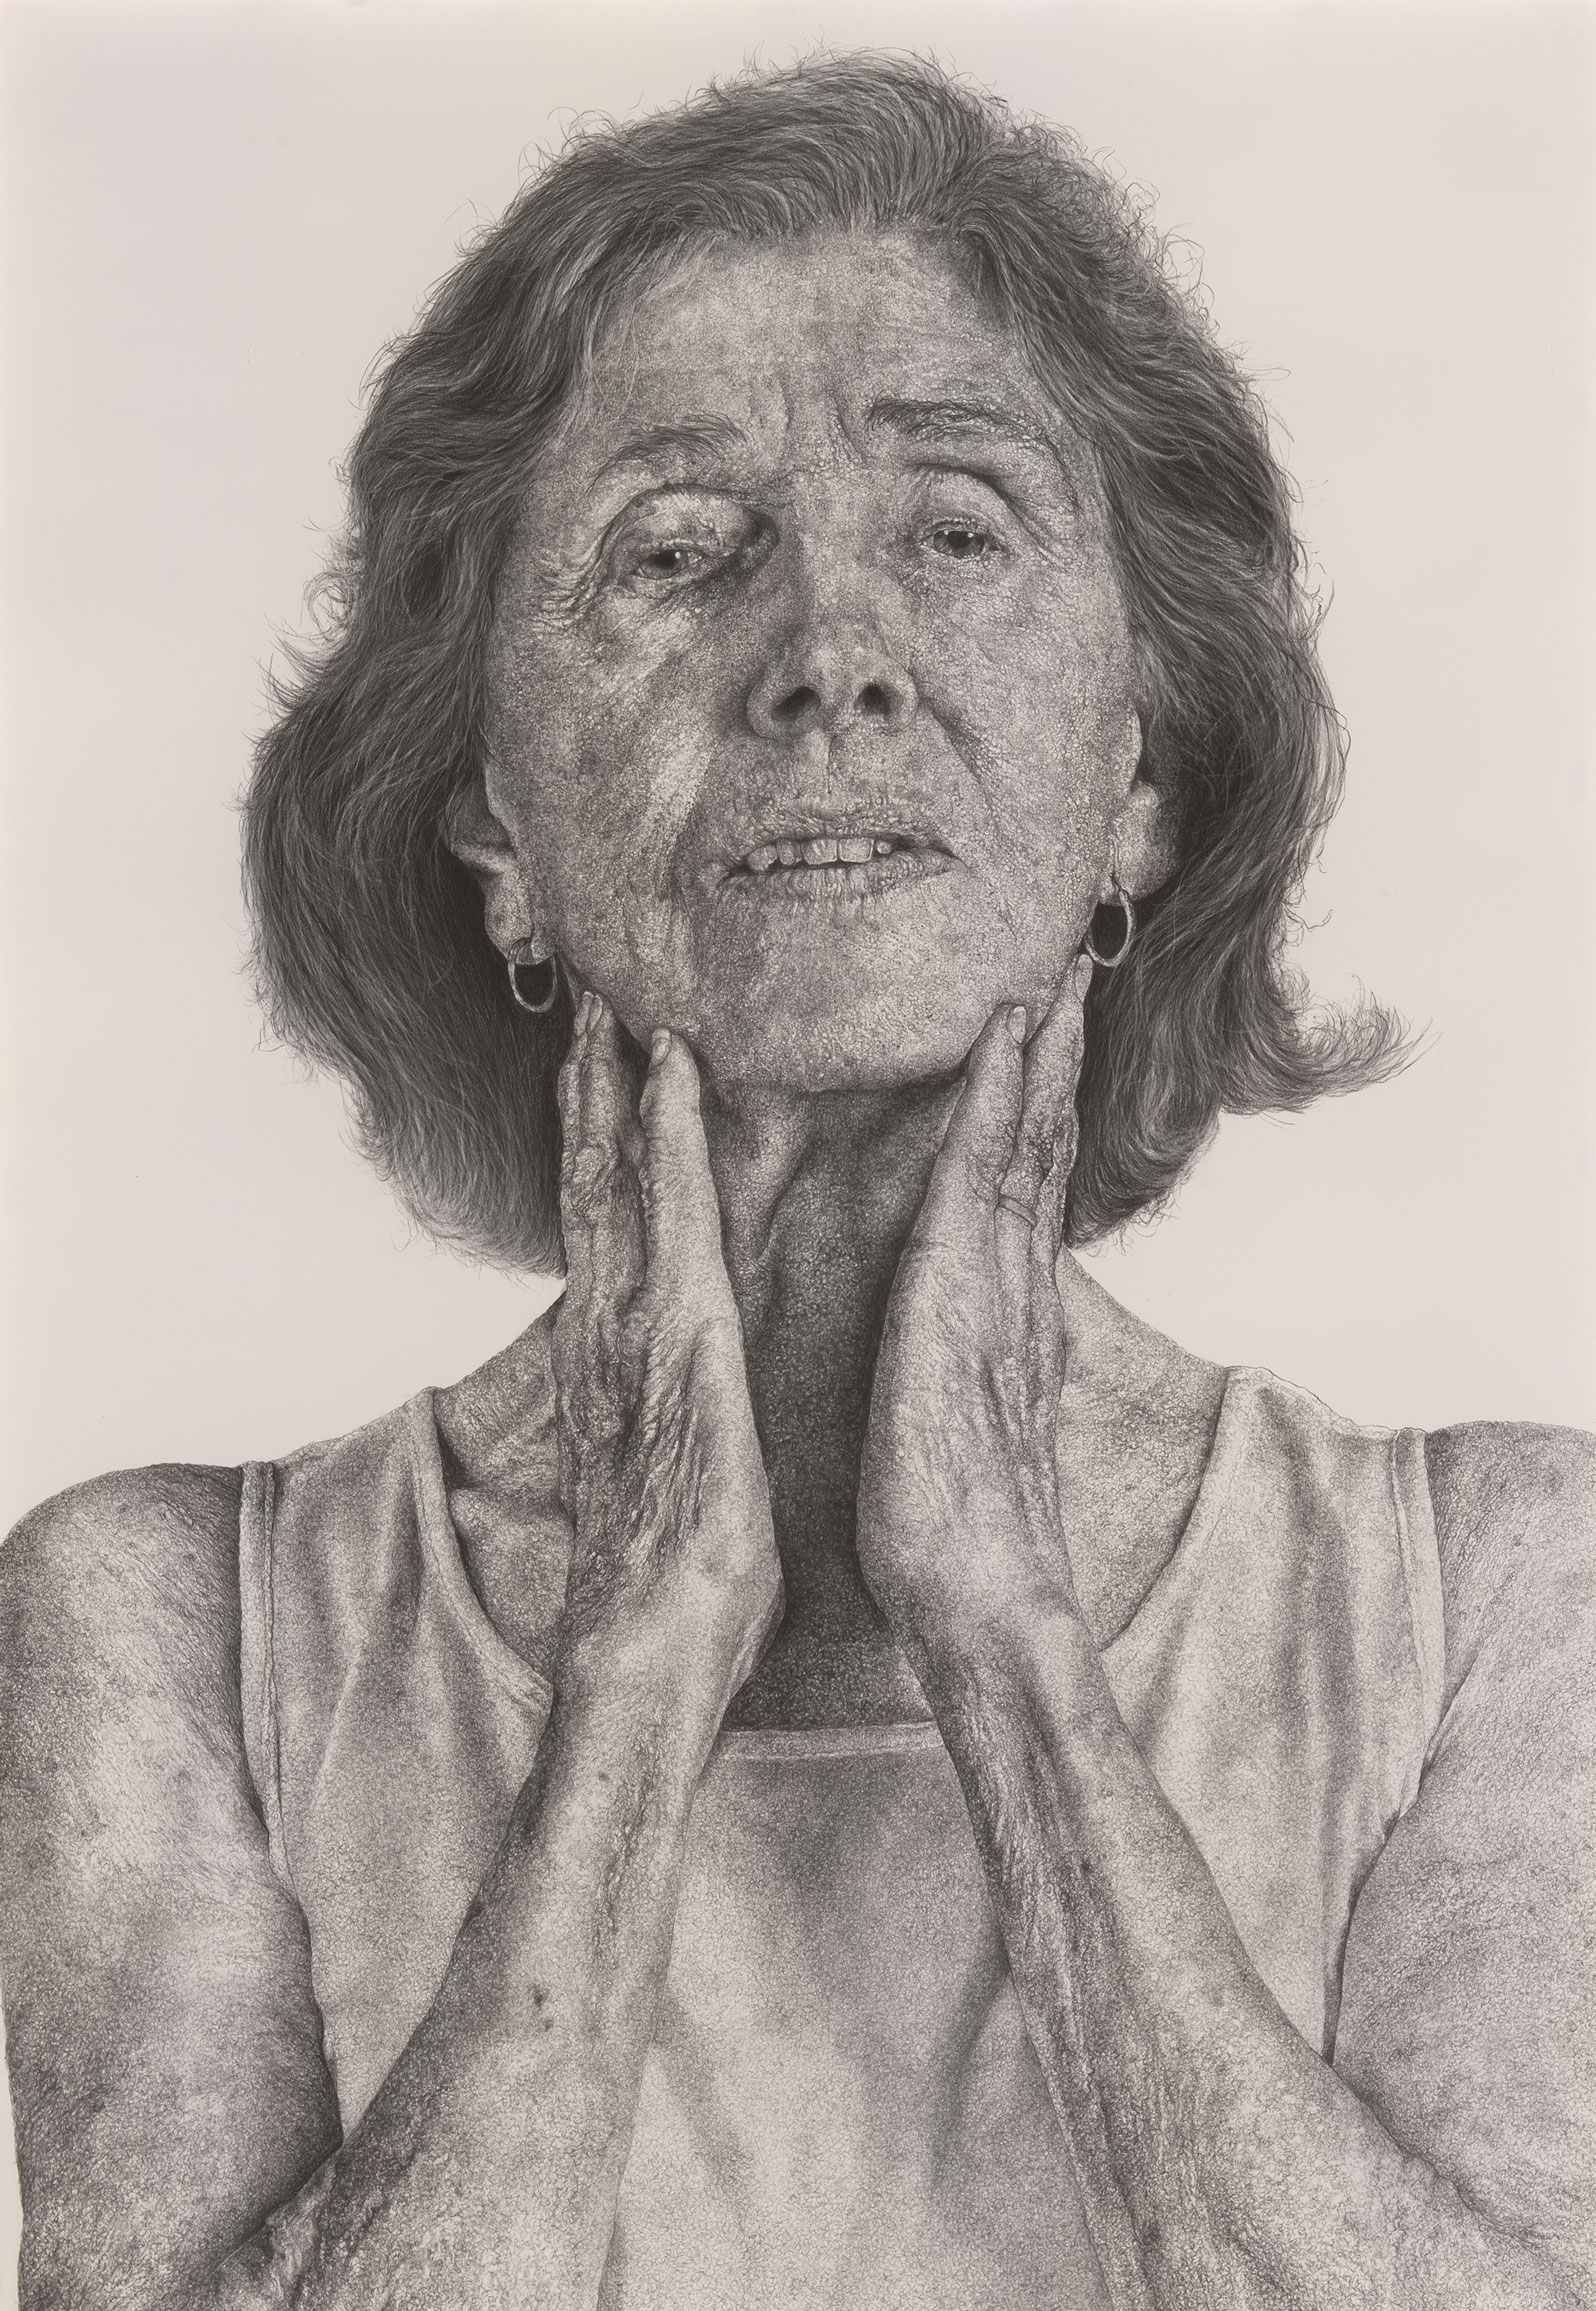 Phyllis by Ray DiCapua Charcoal on paper 2014 Collection of the artist © Ray DiCapua